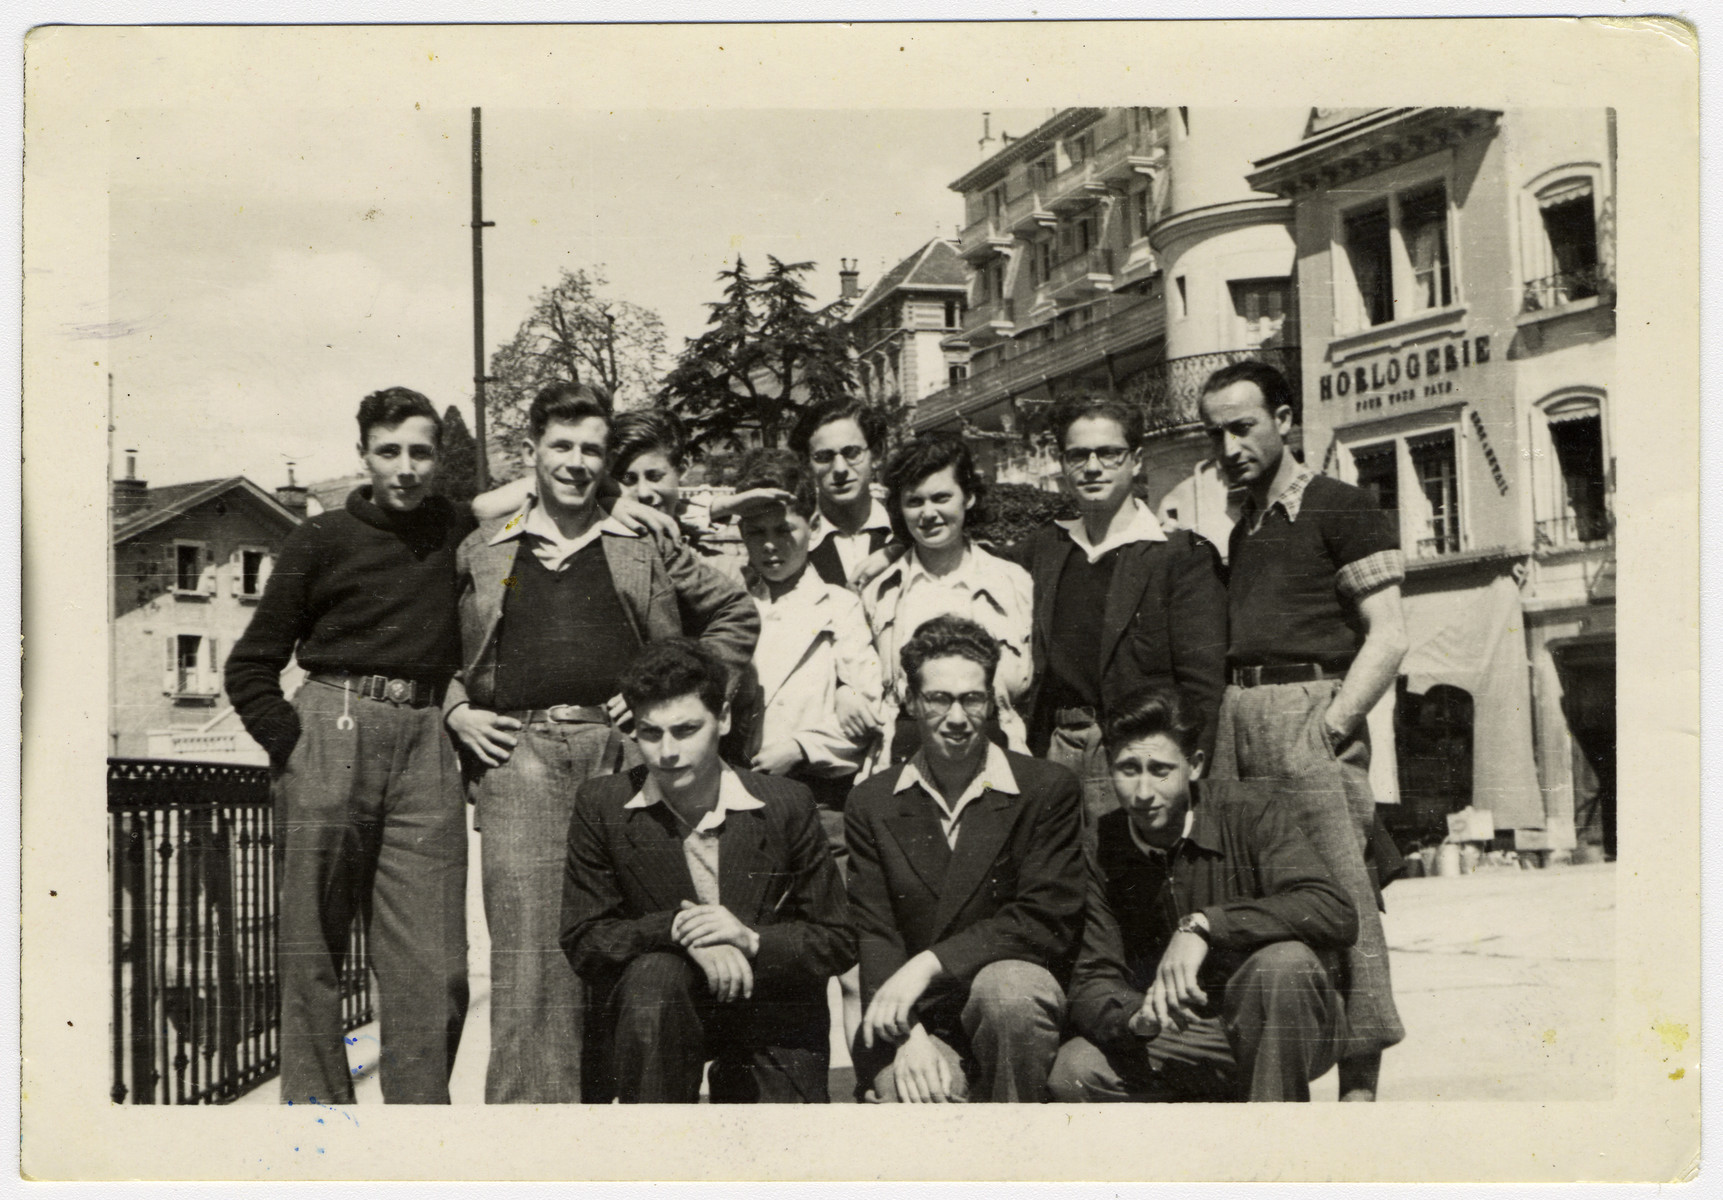 Teenagers from Les Murailles children's homes and members of the  Habonim Zionist youth group pose together on a street in Geneva before leaving as a group for Palestine.  Kneeling from left to right: Yehouda Tuteur, Kurt Frost, Kurt Heilbronner. Standing from left to right: Natan Alter, Ludwig Mayer David Bergmann, Adina Simon,  Manfred Filipson and unidentified  Last row: standing from left to right:  Werner Heilbronner (half hidden between Ludwig Mayer  and David Bergmann) and  unidentified between David and Adina Simon.